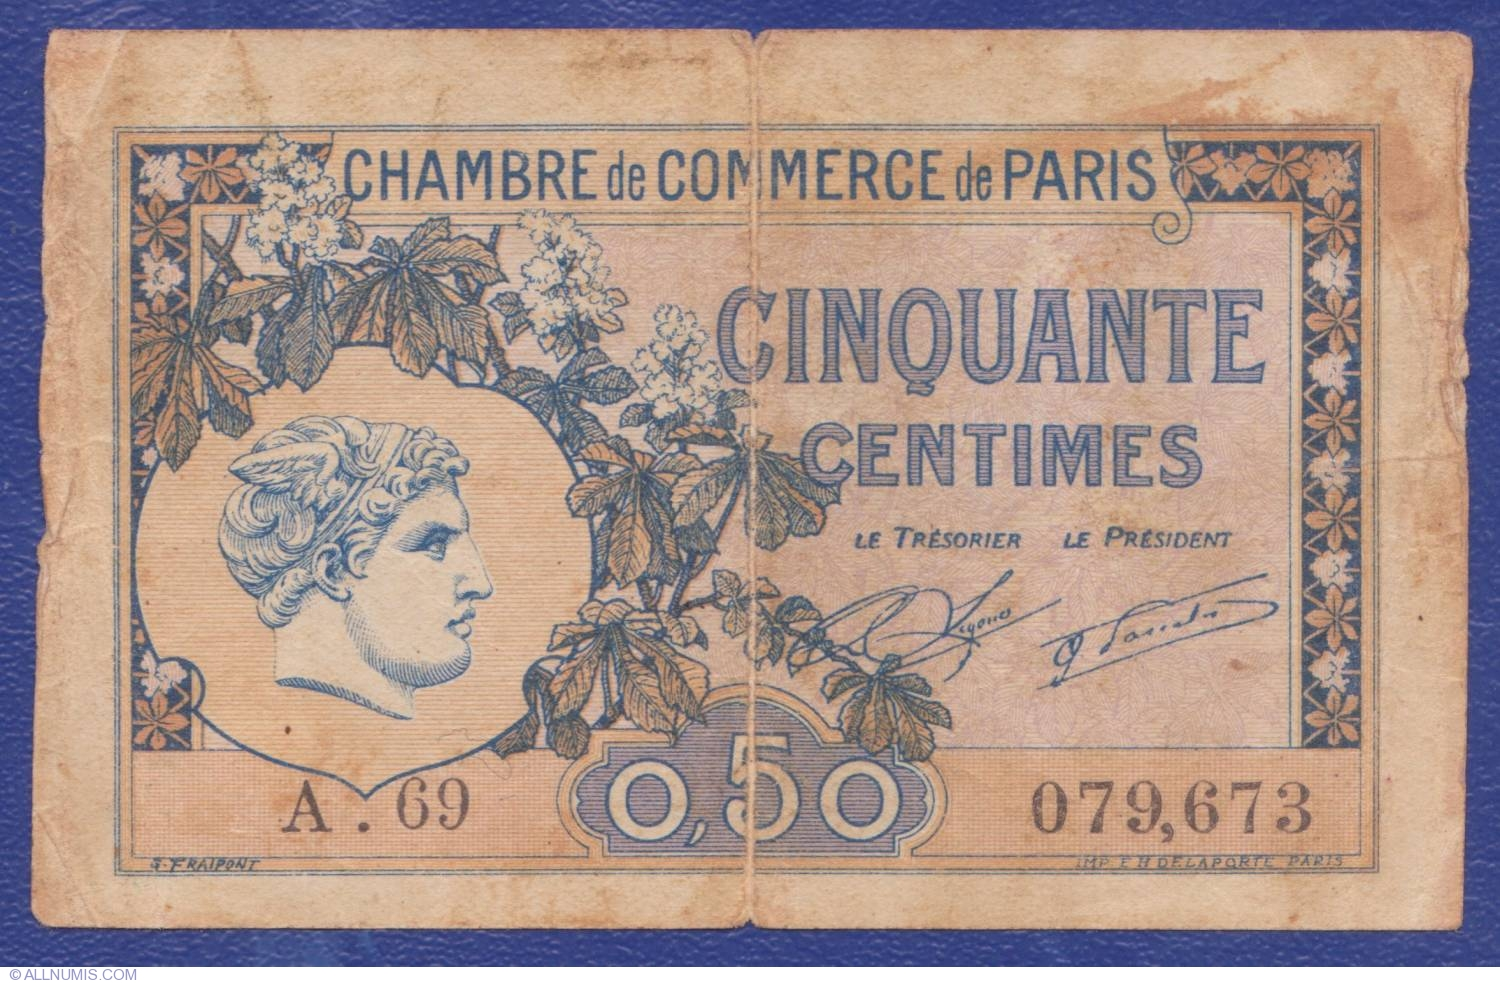 50 centimes 1920 paris chambre de commerce france community currency 16. Black Bedroom Furniture Sets. Home Design Ideas